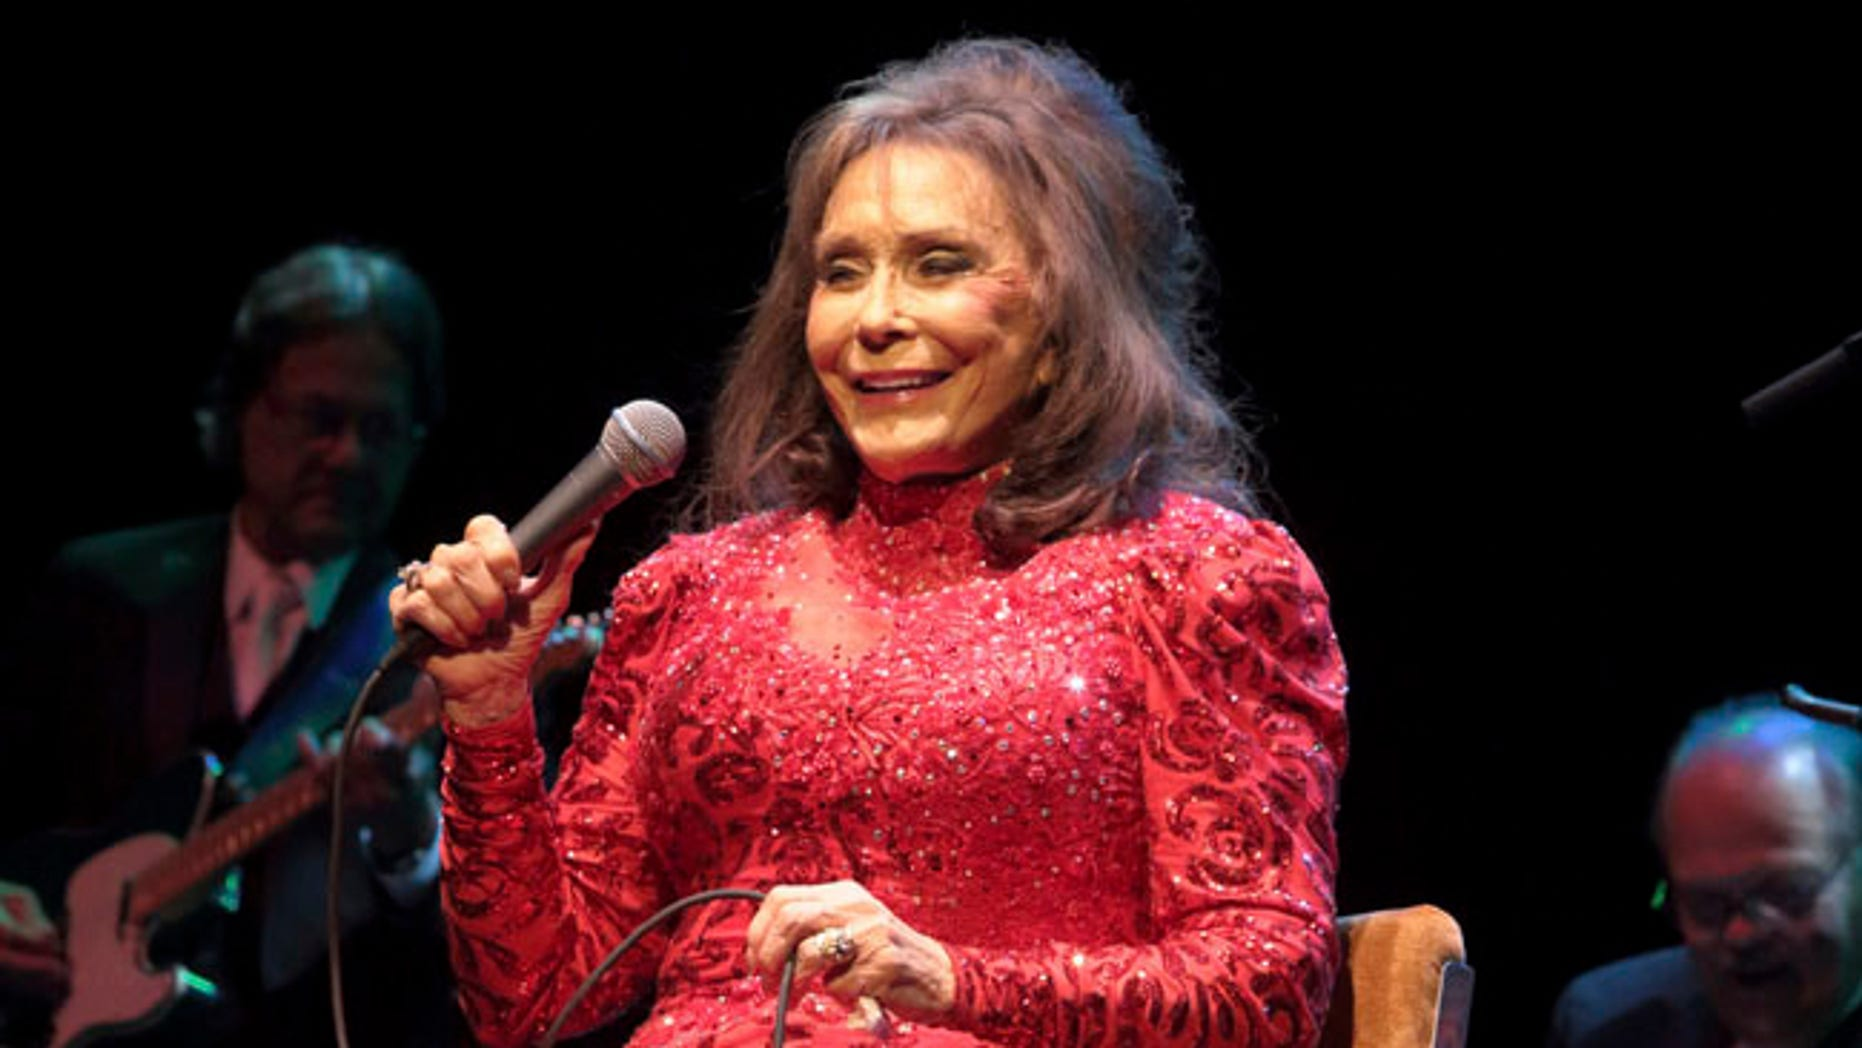 FILE - In this Aug. 28, 2016 file photo, Loretta Lynn performs in concert at the American Music Theater in Lancaster, Pa. A posting on country music legend Lynn's website says she has been hospitalized after having a stroke. The posting says Lynn was admitted into a Nashville hospital on Thursday night, May 4, 2017, after suffering the stroke at her home in Hurricane Mills, Tenn. (Photo by Owen Sweeney/Invision/AP, File)